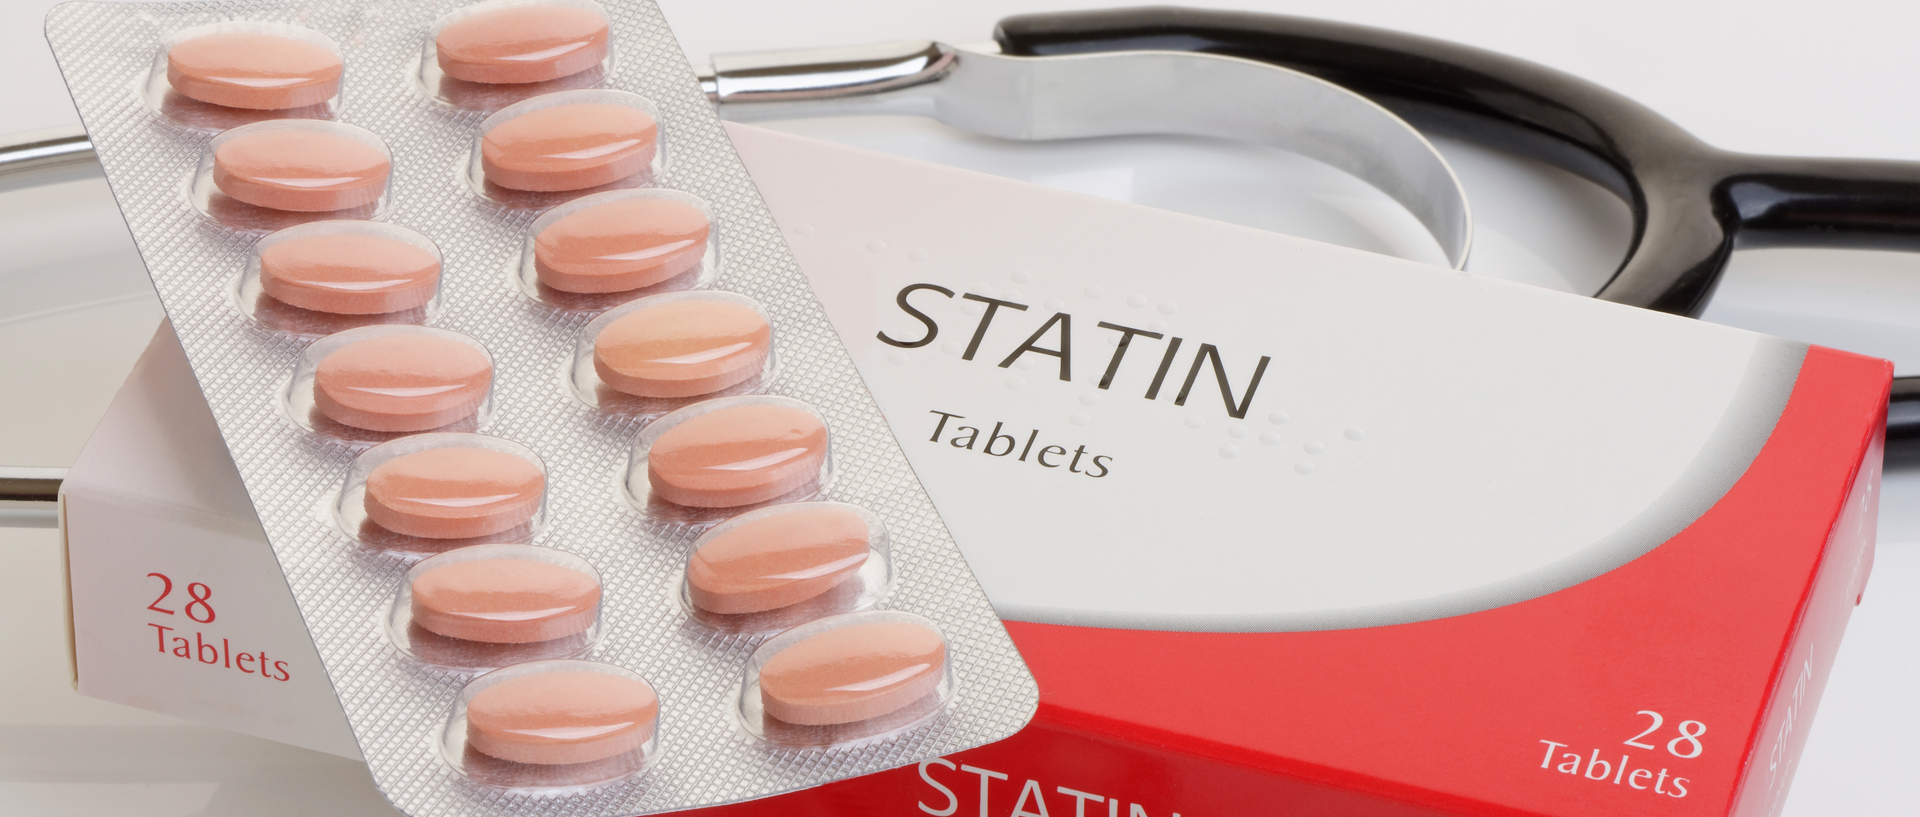 Statins Cause Diabetes  Consumer Reports